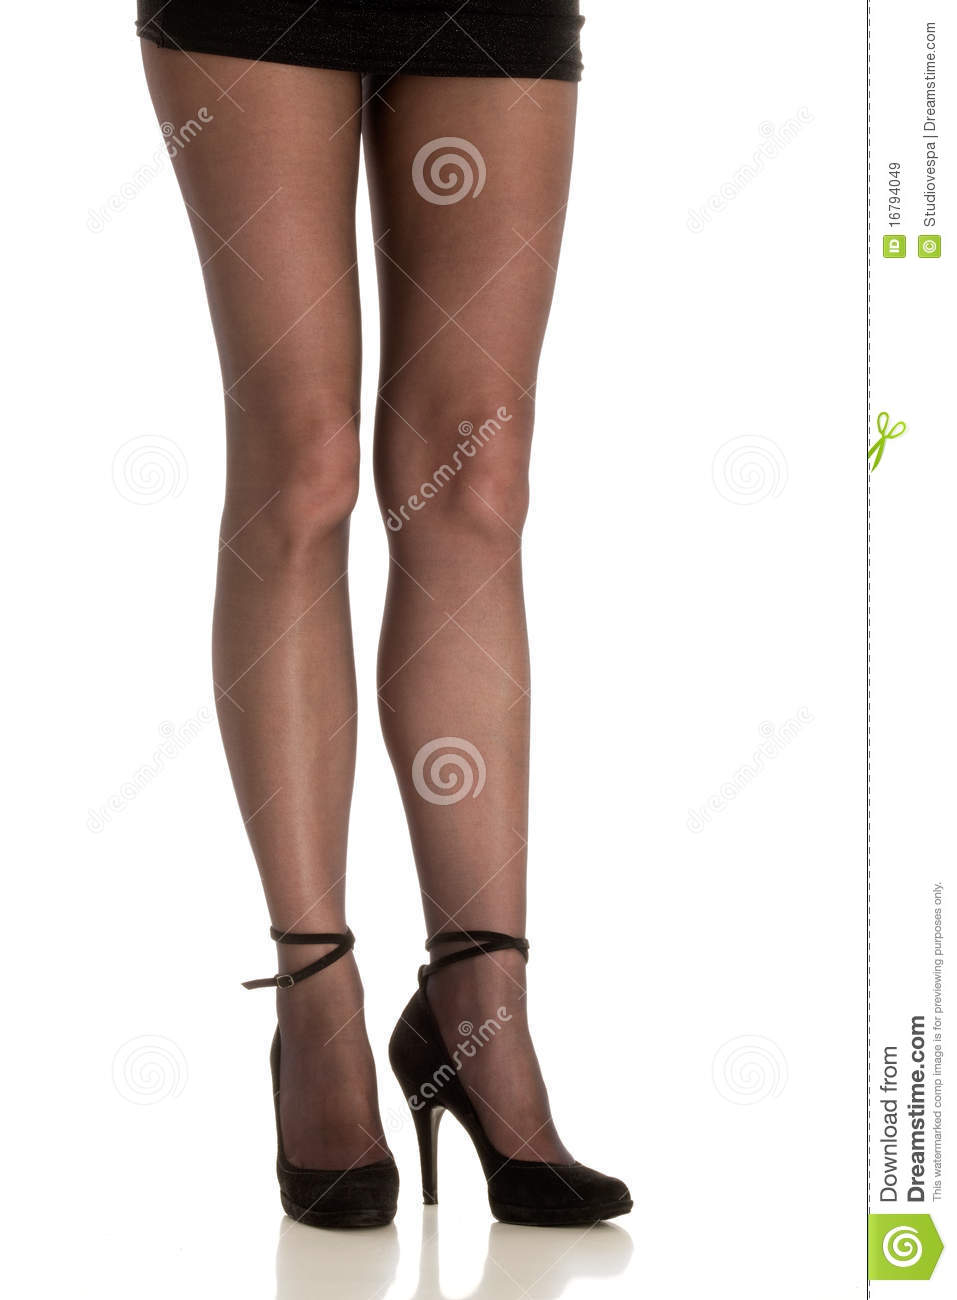 Woman Wearing High Heels Royalty Free Stock Images - Image: 16794049